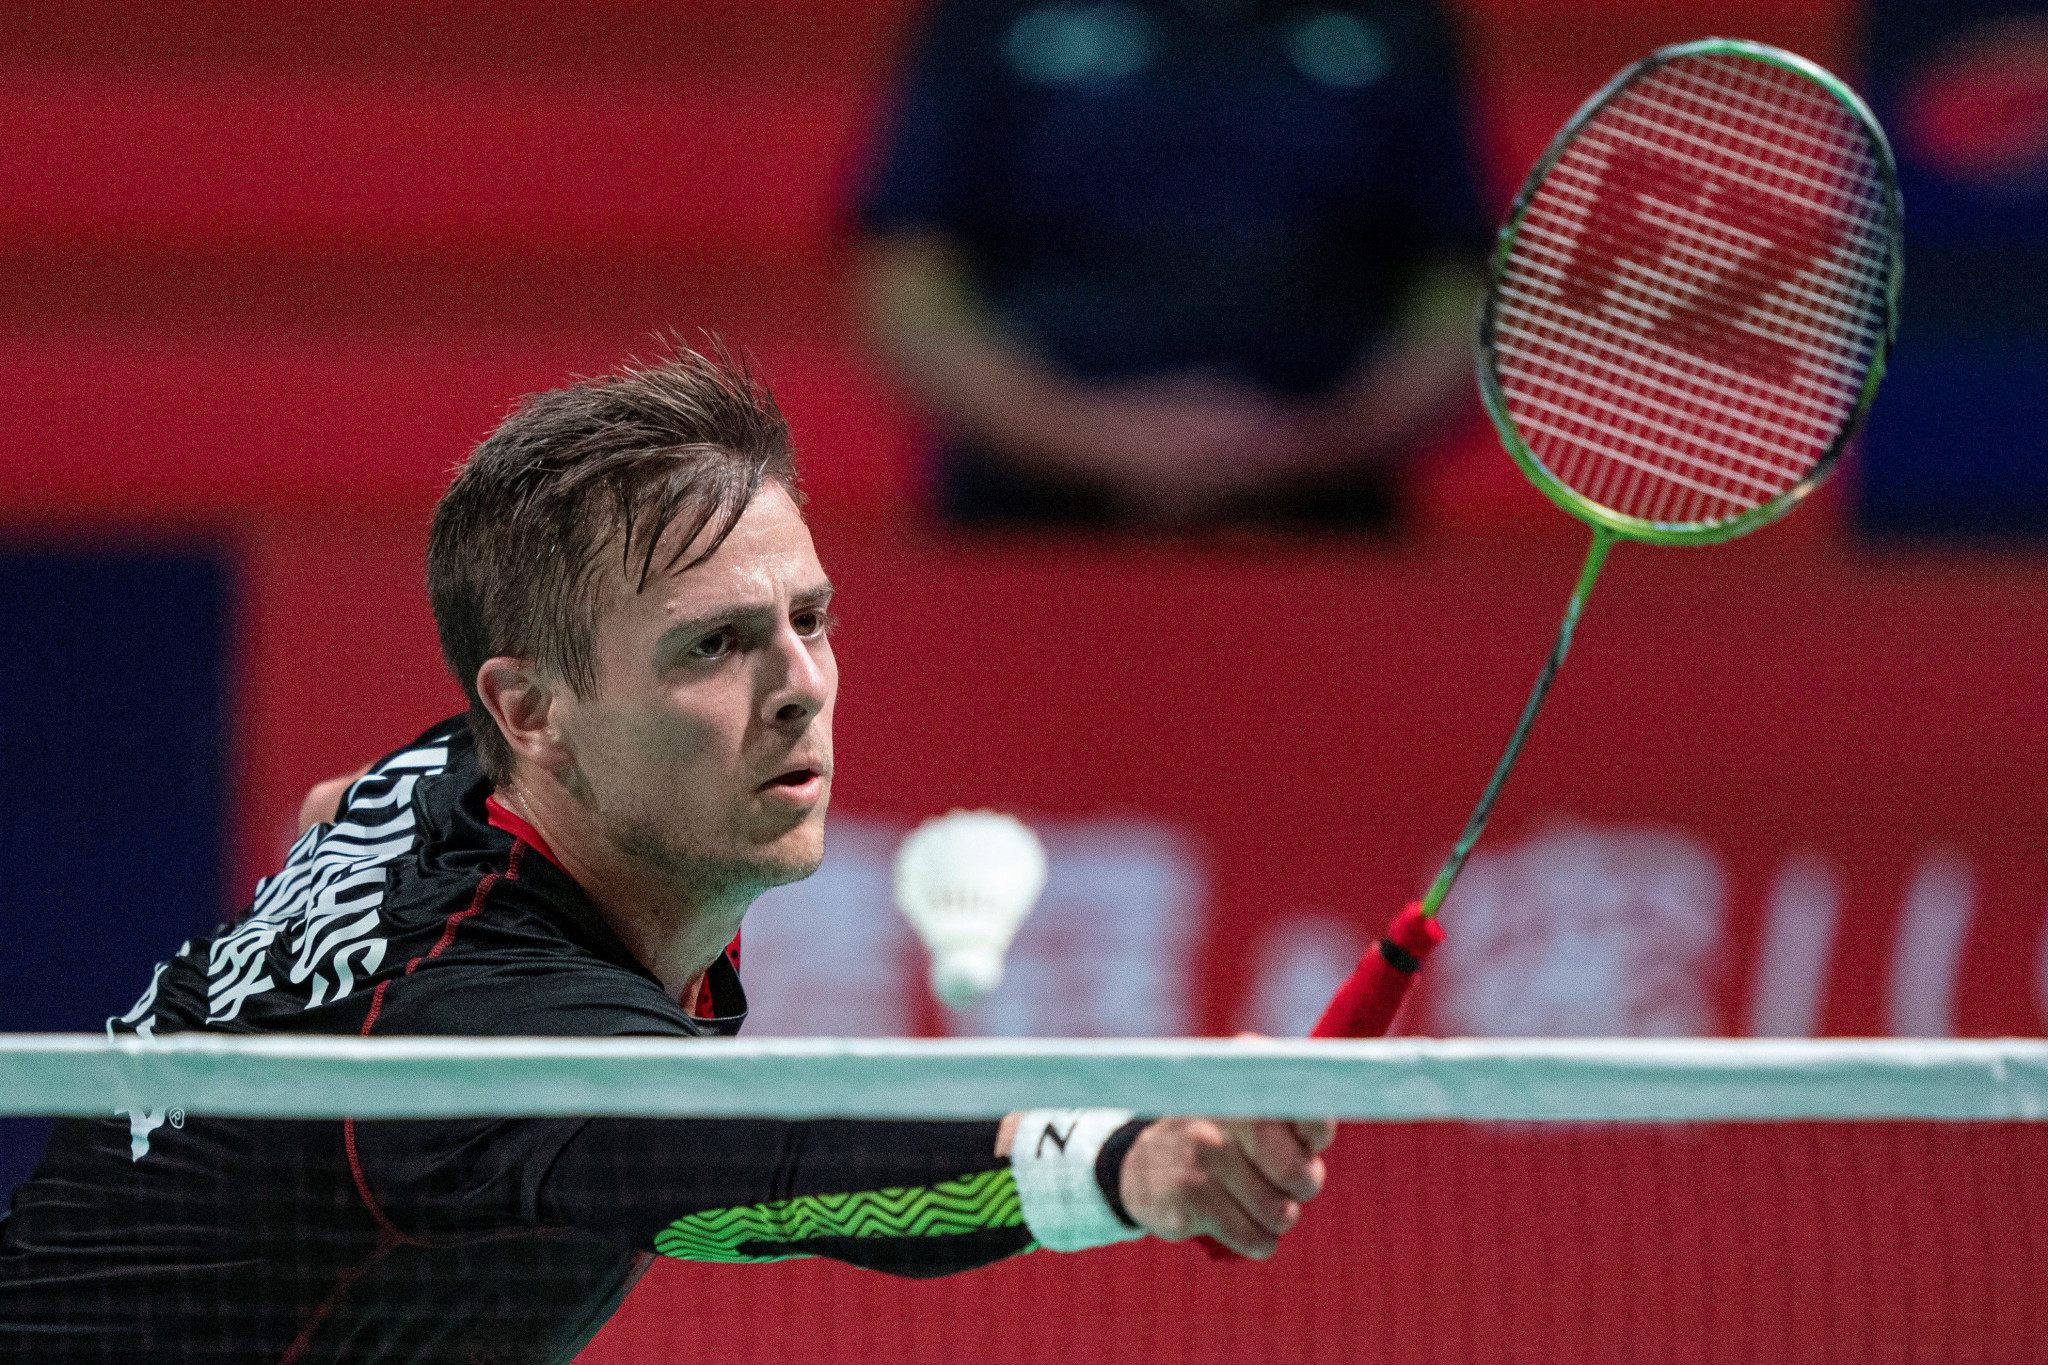 Denmark and Indonesia record tight wins as Thomas and Uber Cup continues